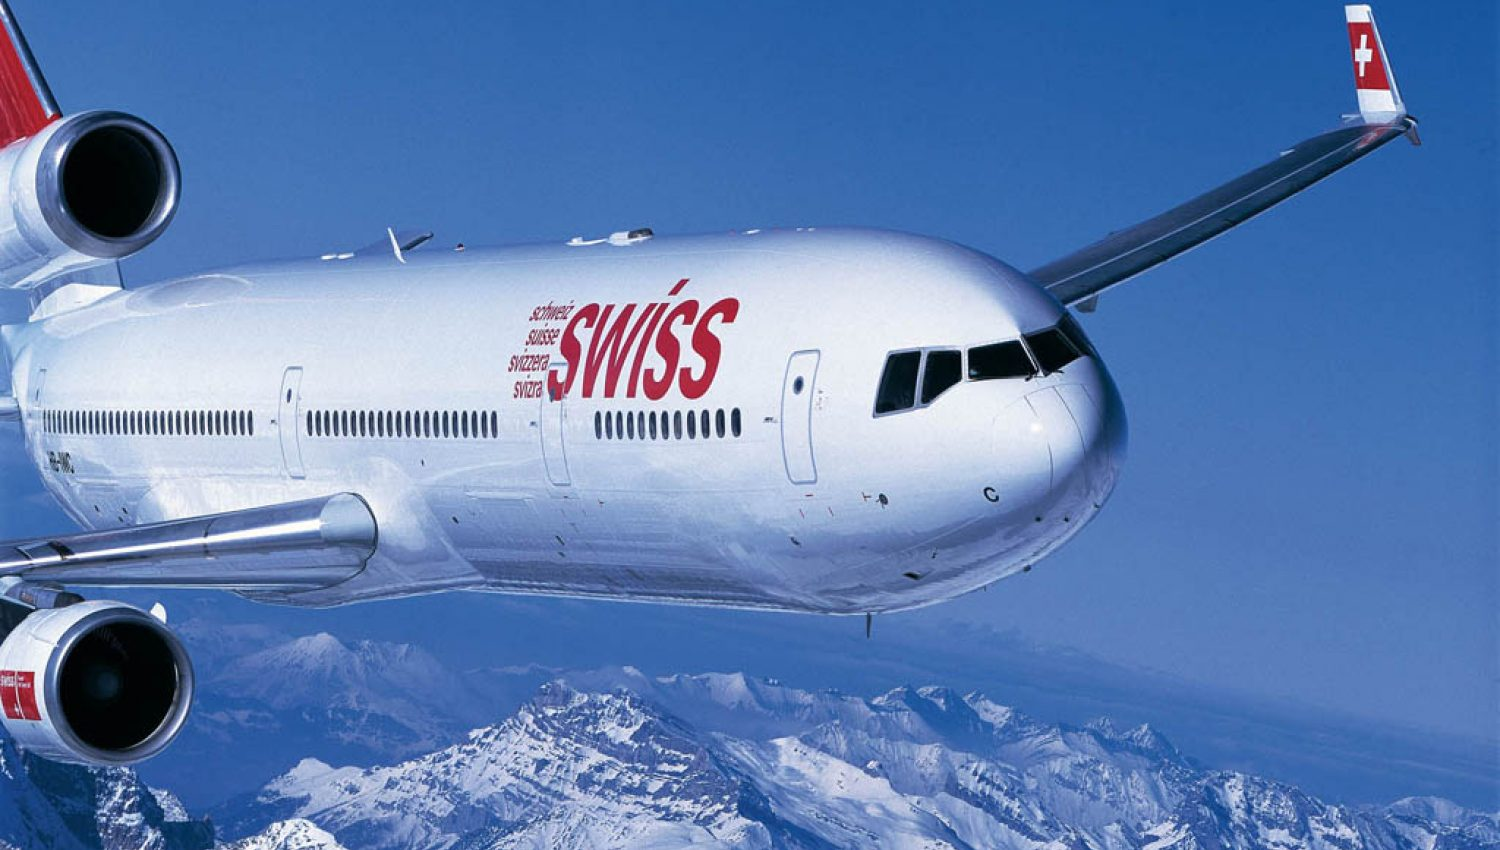 Your Flights With Swiss International Air Lines Your